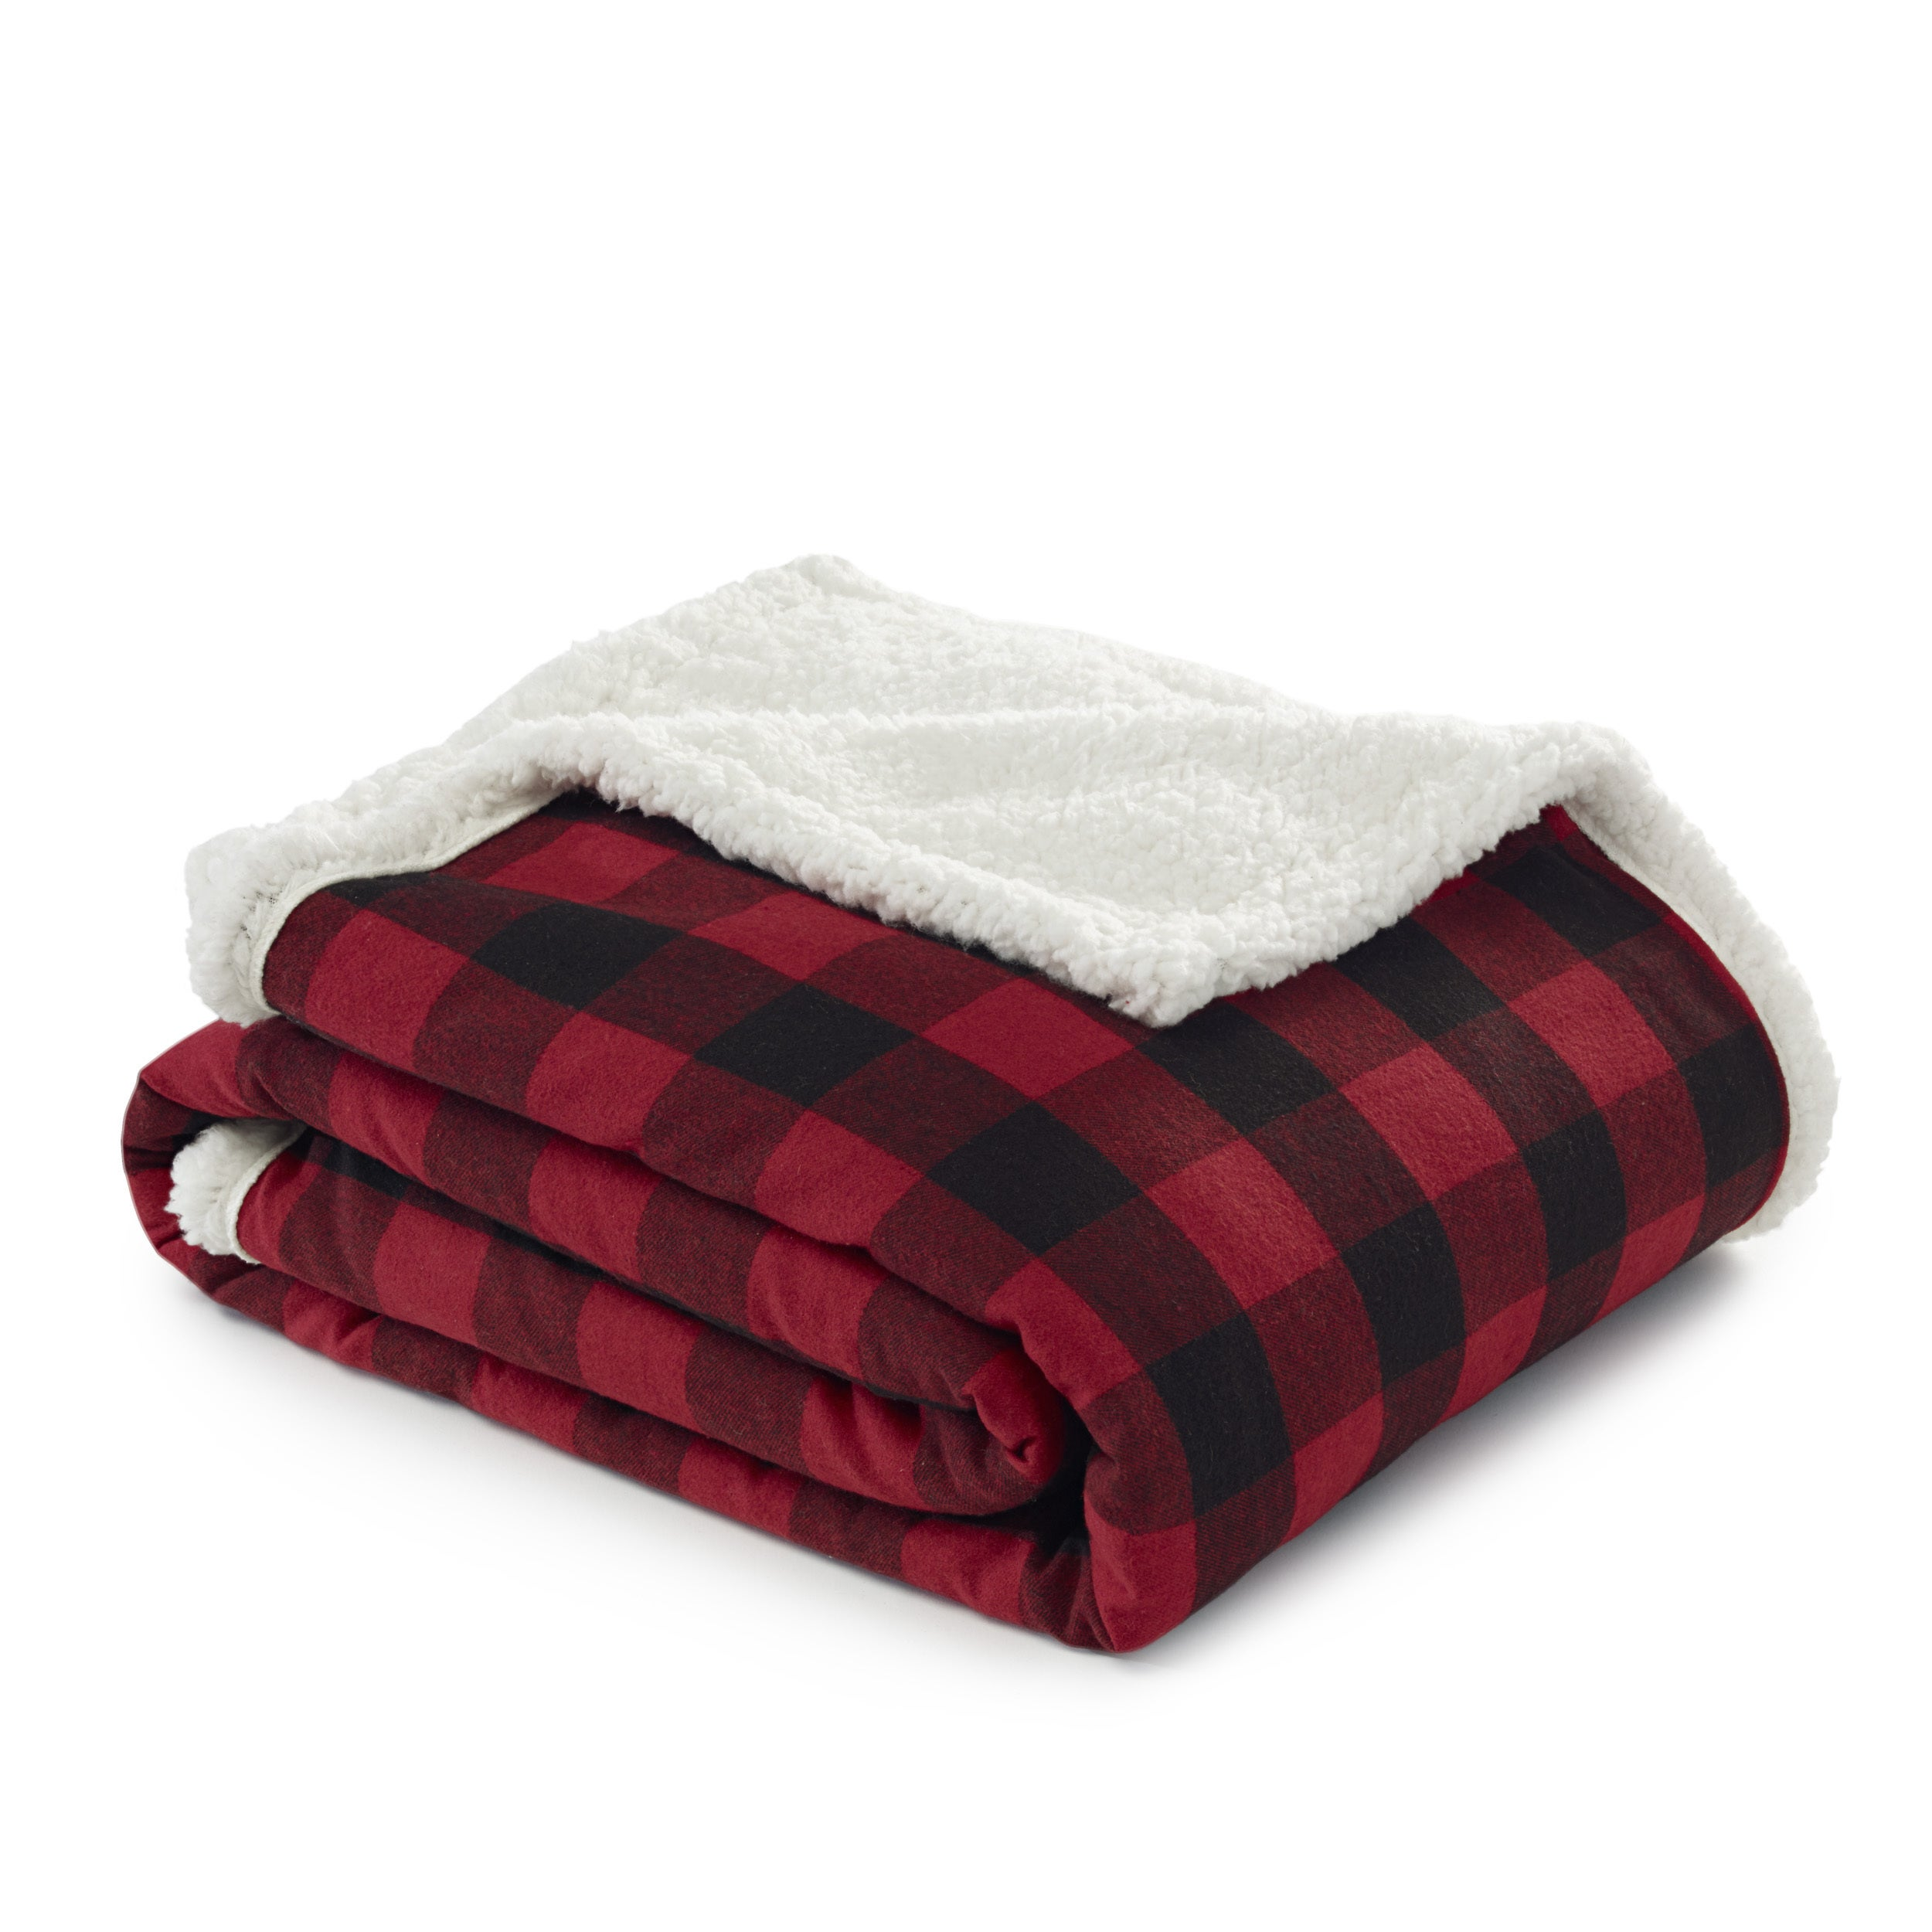 de3b6636 Shop Eddie Bauer Cabin Plaid Flannel Sherpa Throw - Free Shipping On Orders  Over $45 - Overstock - 12320525